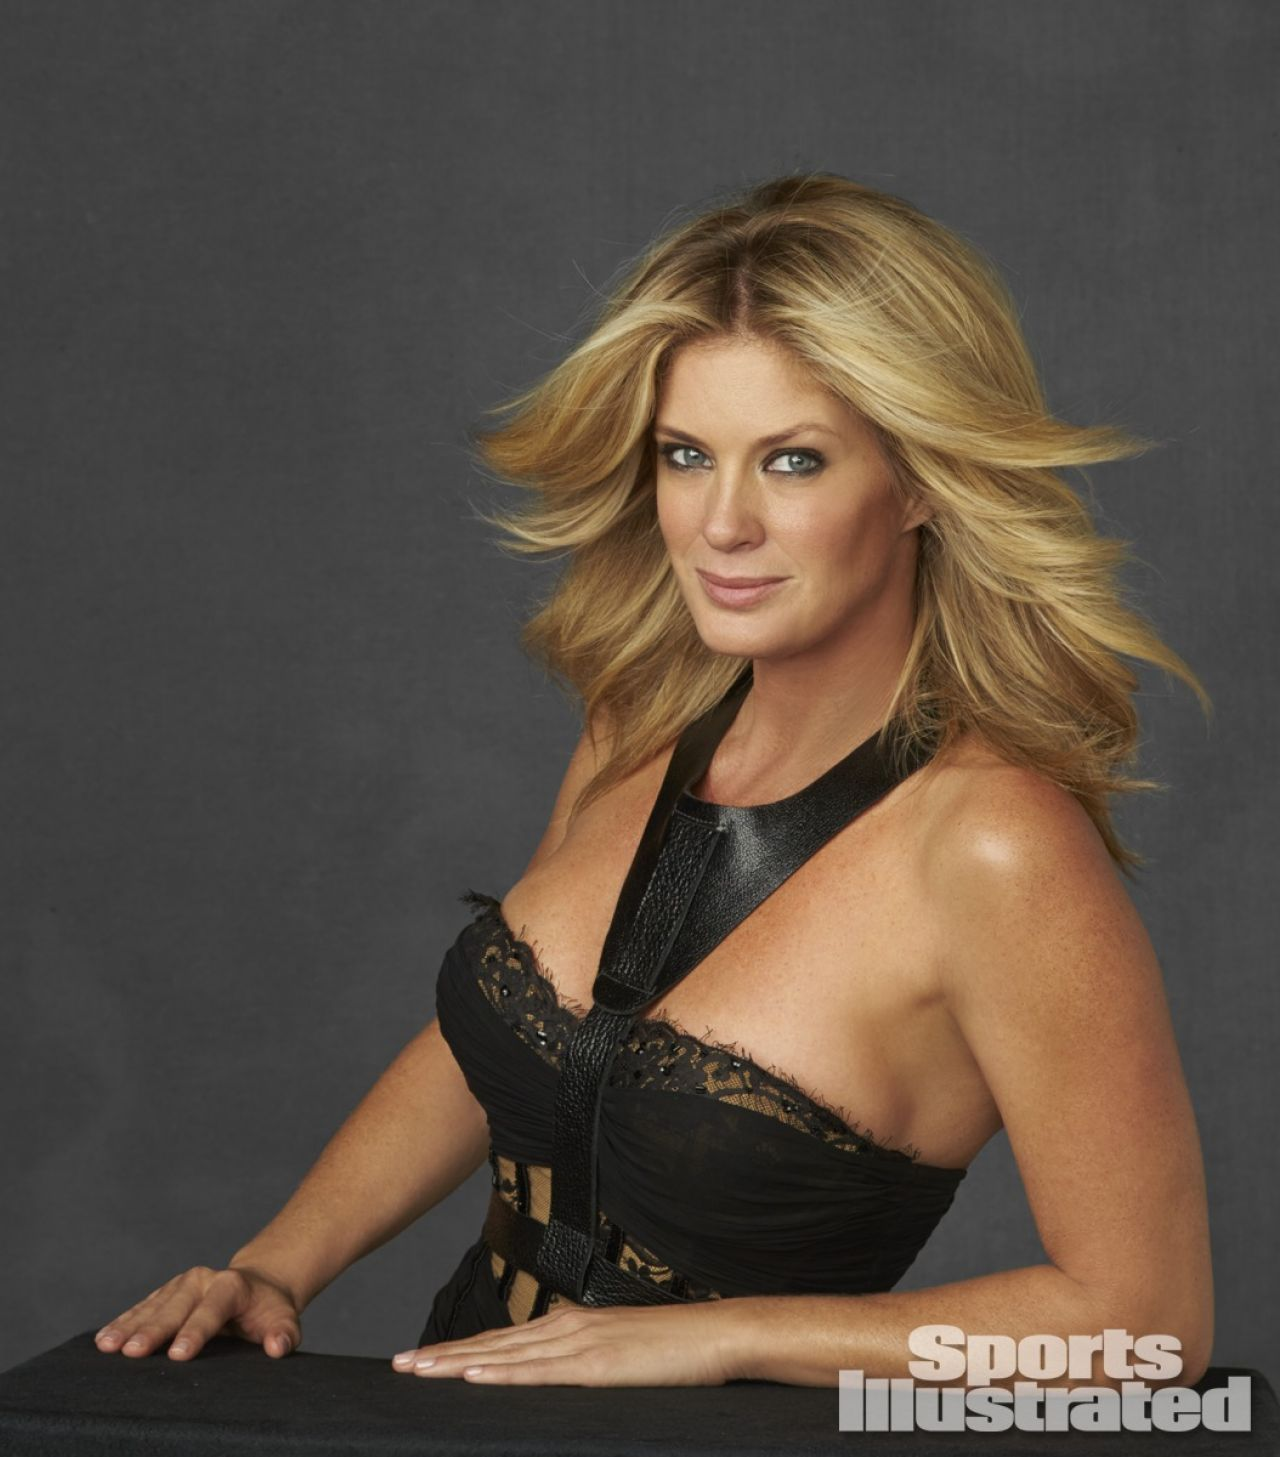 Naked picture of rachel hunter — photo 9